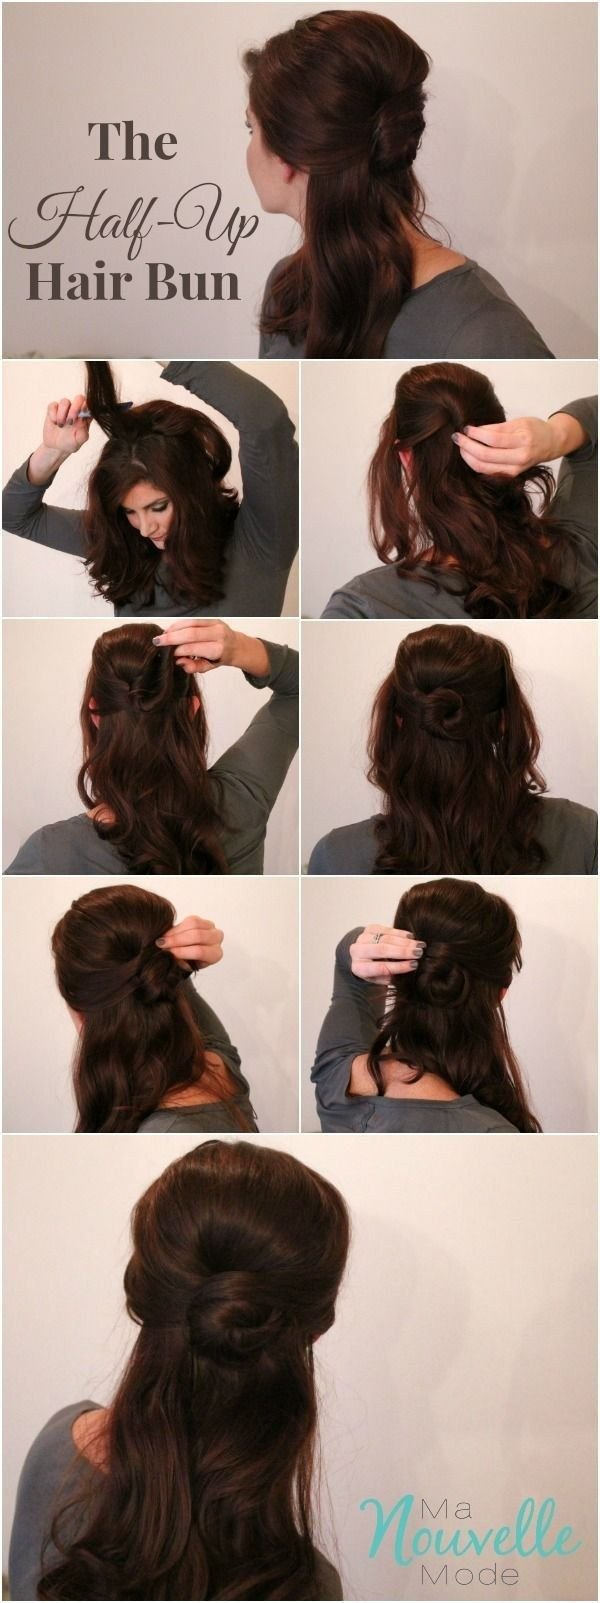 Caring Hands,hair,clothing,hairstyle,brown,